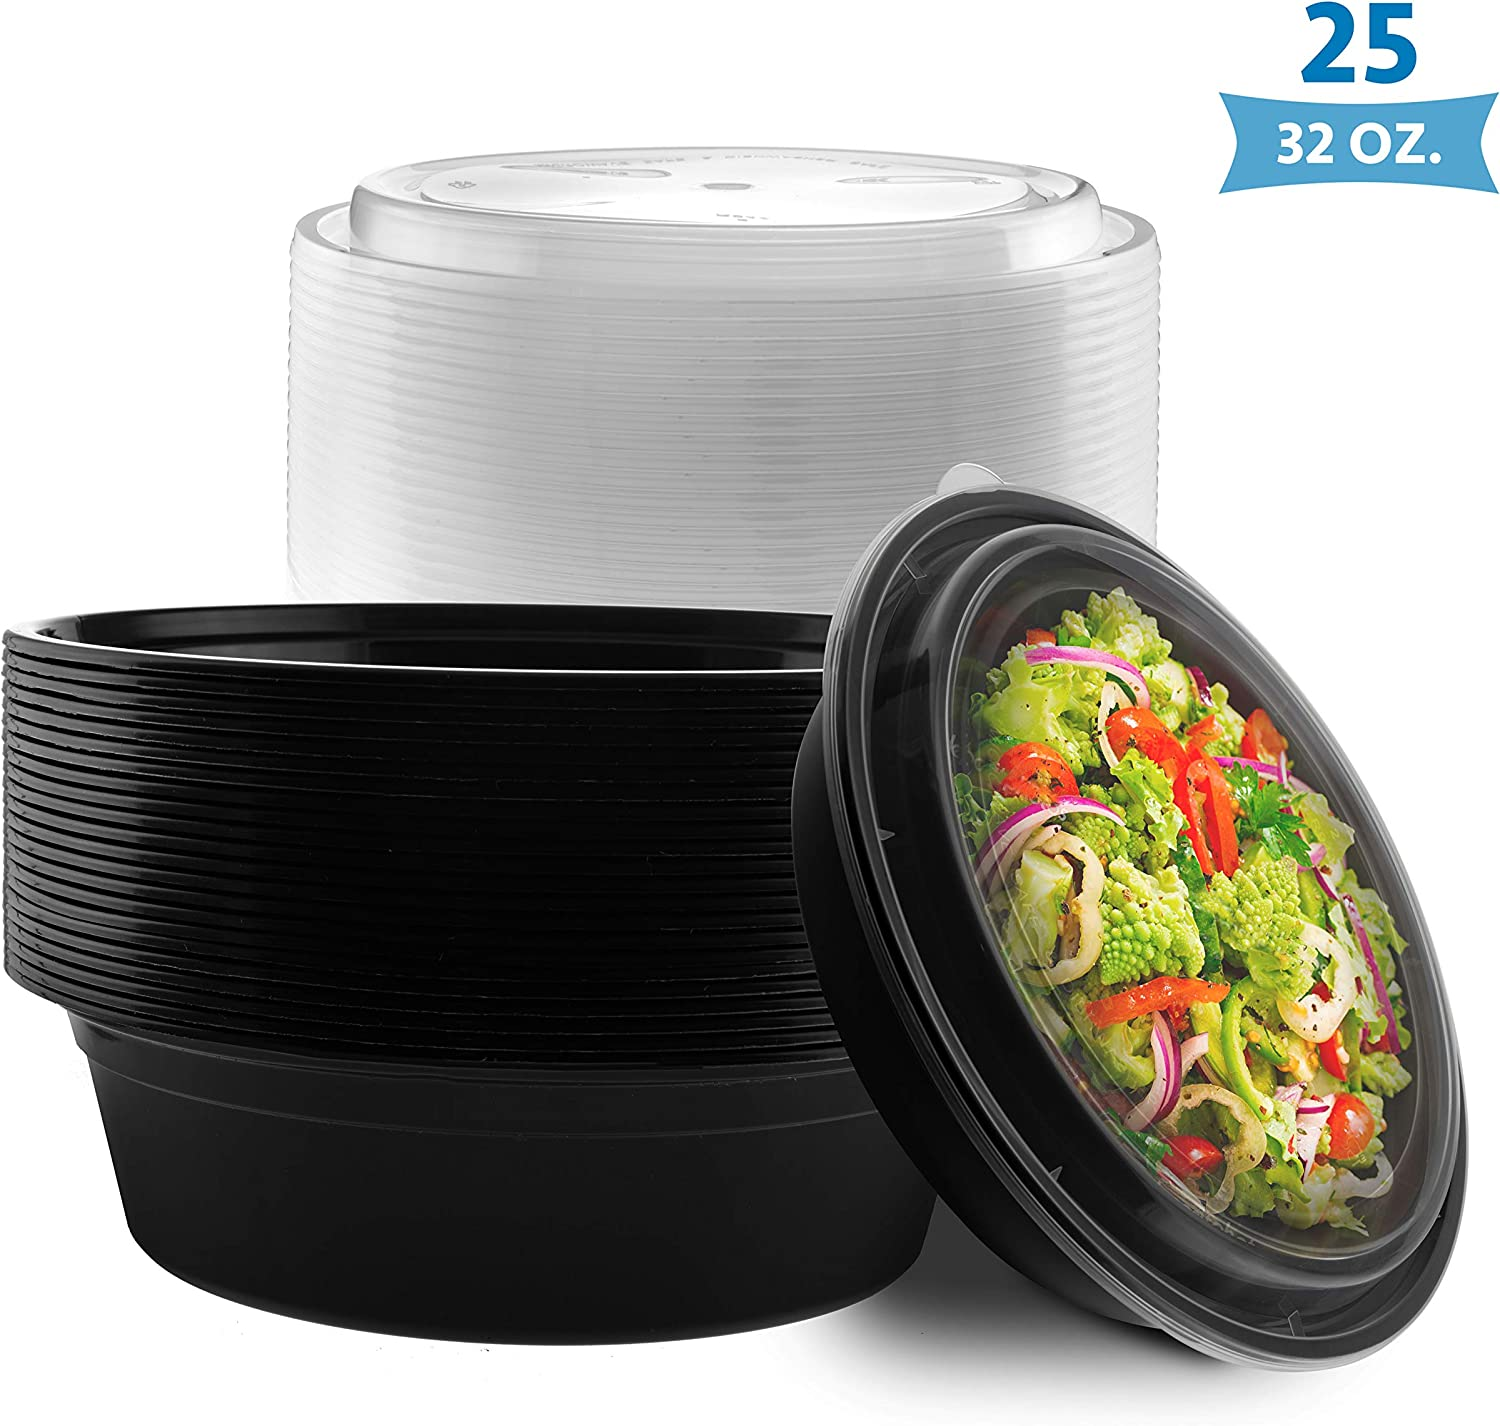 NYHI Round Meal Prep Food Containers | One Compartment BPA-Free Plastic Food Storage Portion Control Dishes With Lids | Reusable Bento Lunch Box | Microwave Dishwasher Freezer Safe | 7 Inch, 25 Pack